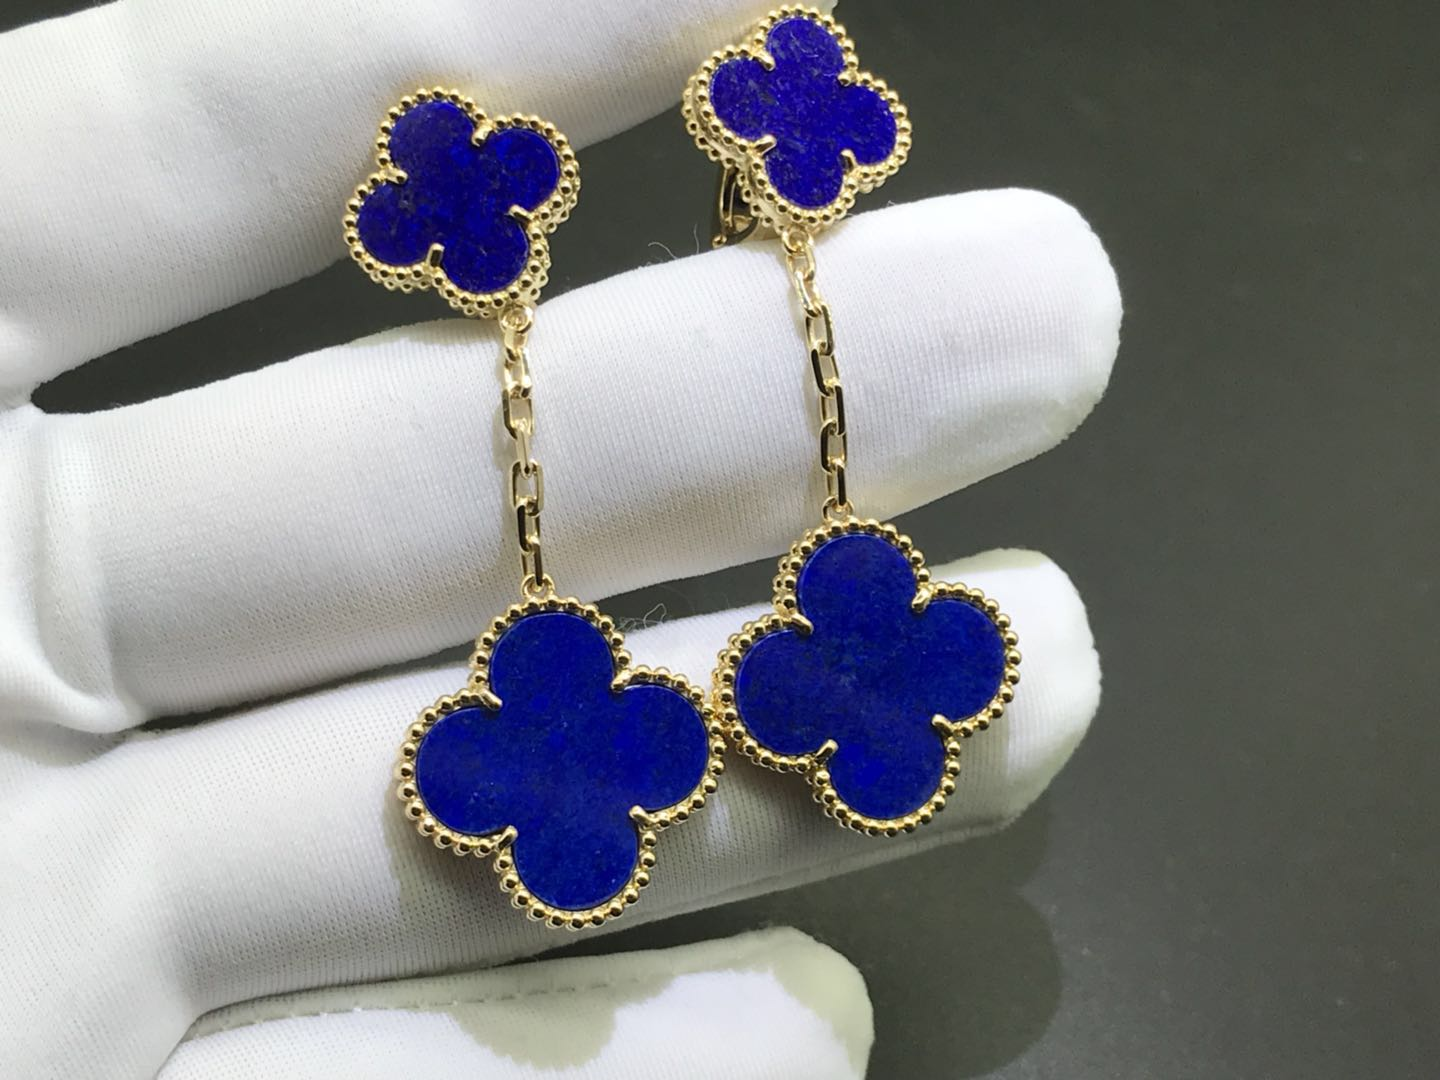 Van Cleef & Arpels Lapis Lazuli 2 Motifs Magic Alhambra Gold Earrings